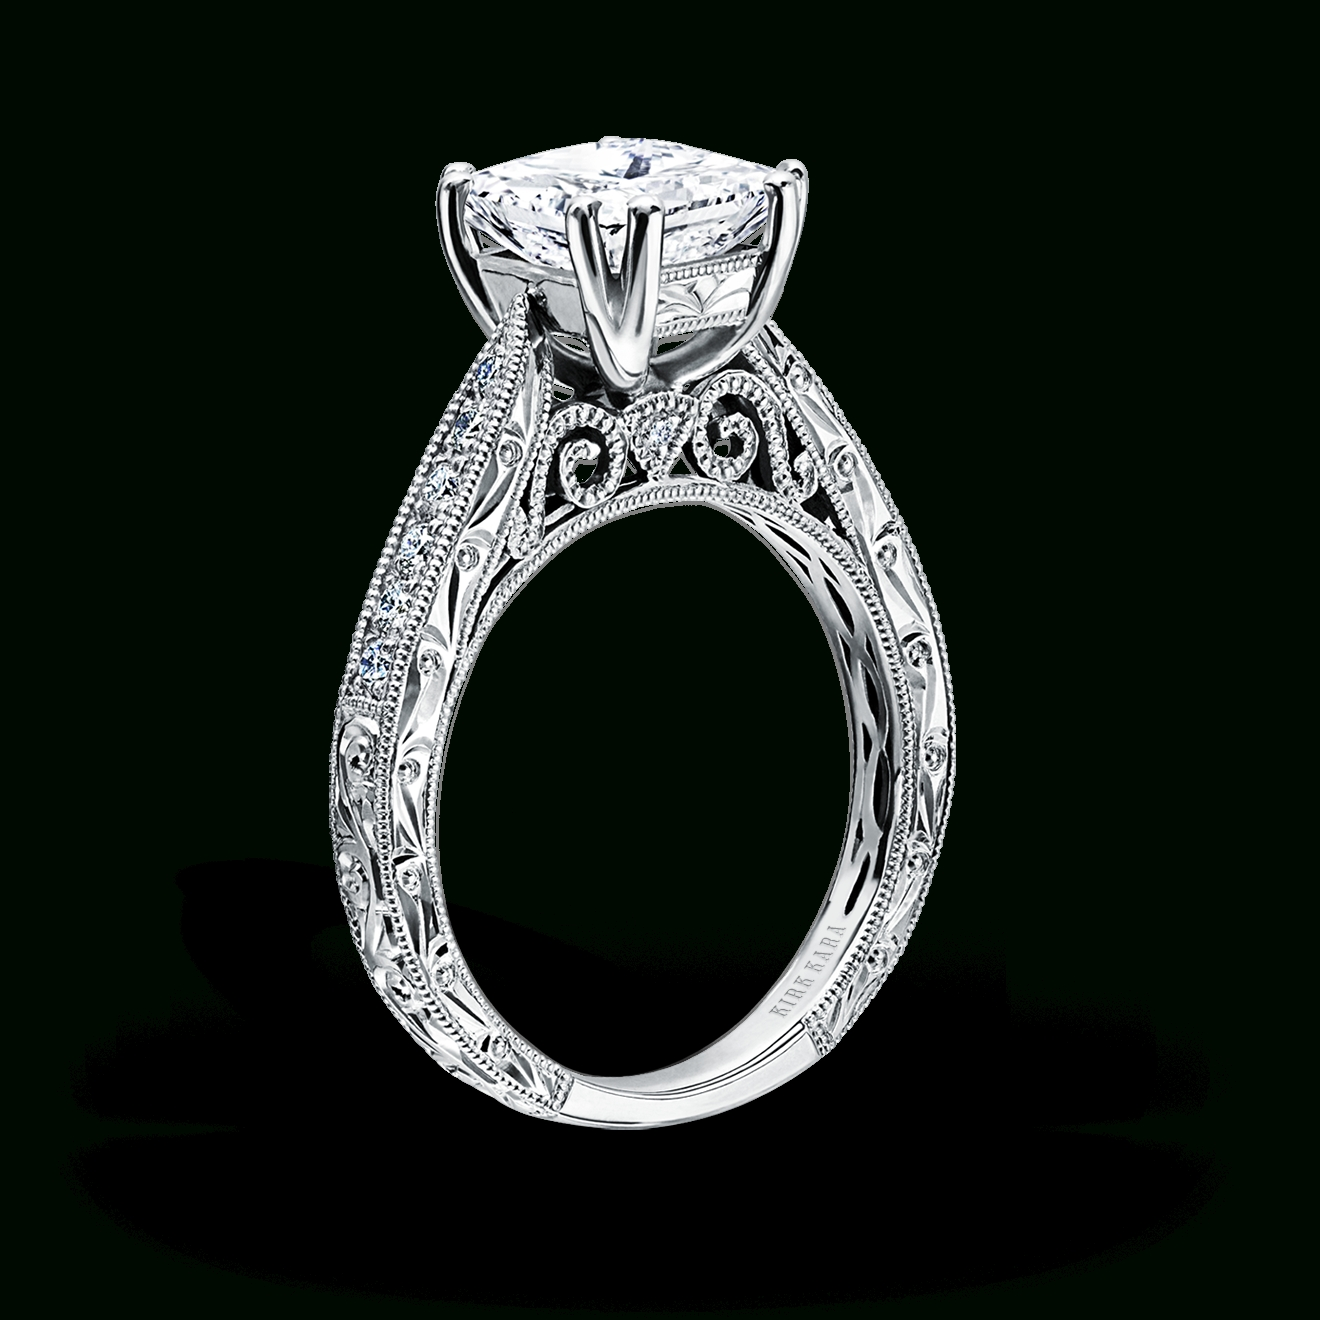 Captivating Designer Diamond Engagement Ringskirk Kara Inside Intricate Engagement Rings (View 6 of 15)